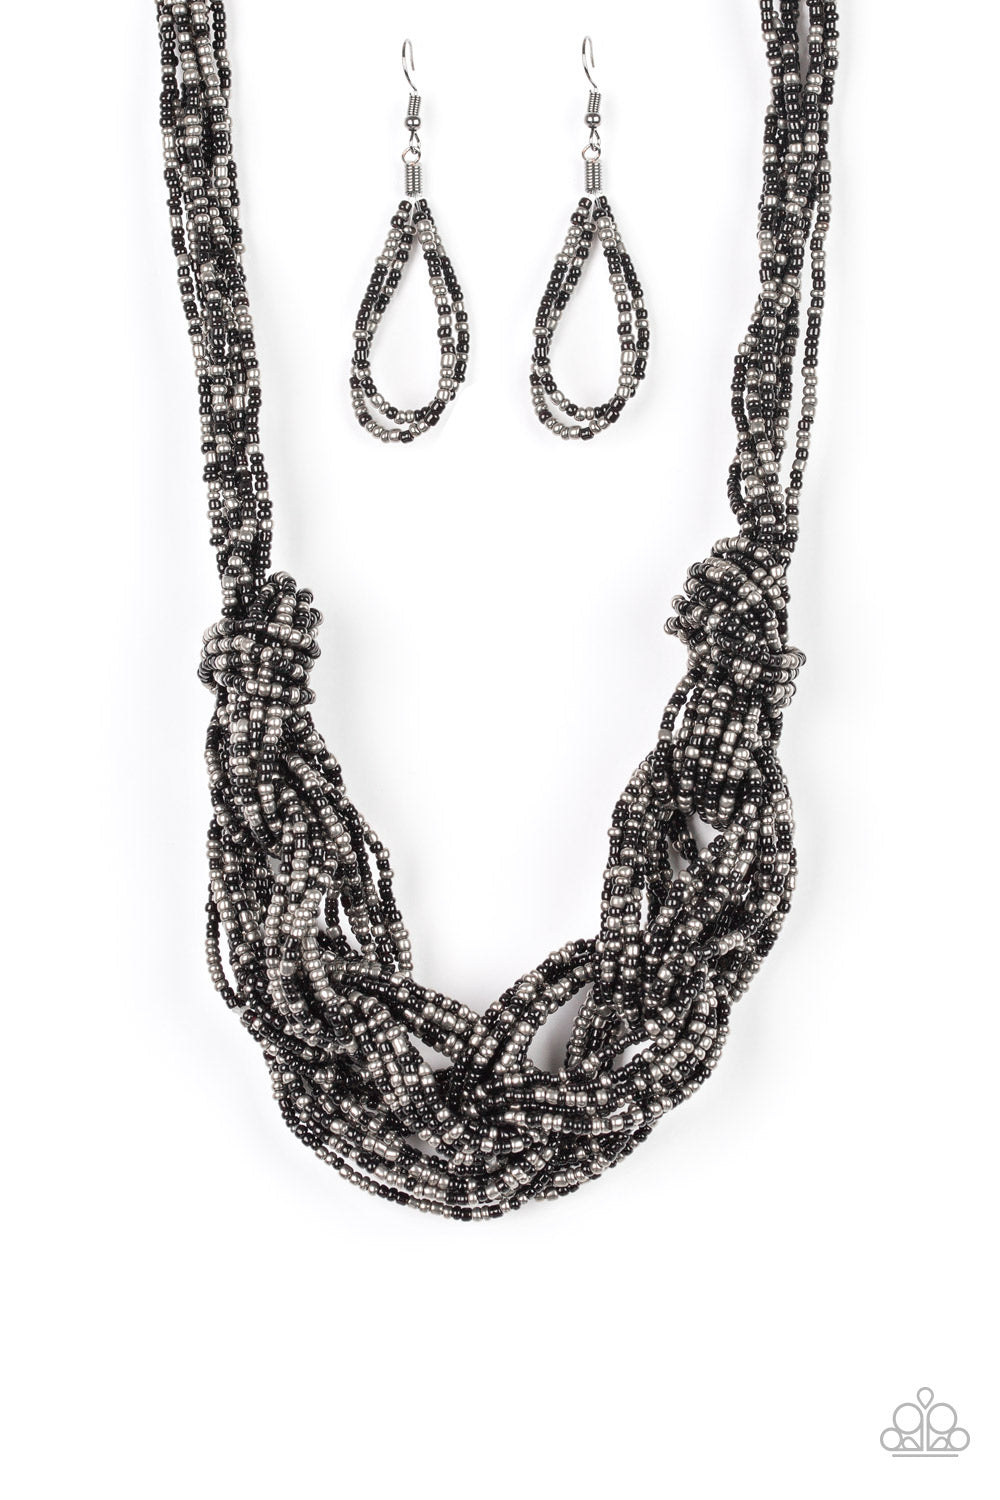 Paparazzi Accessories - City Catwalk - Black Necklace Set - JMJ Jewelry Collection